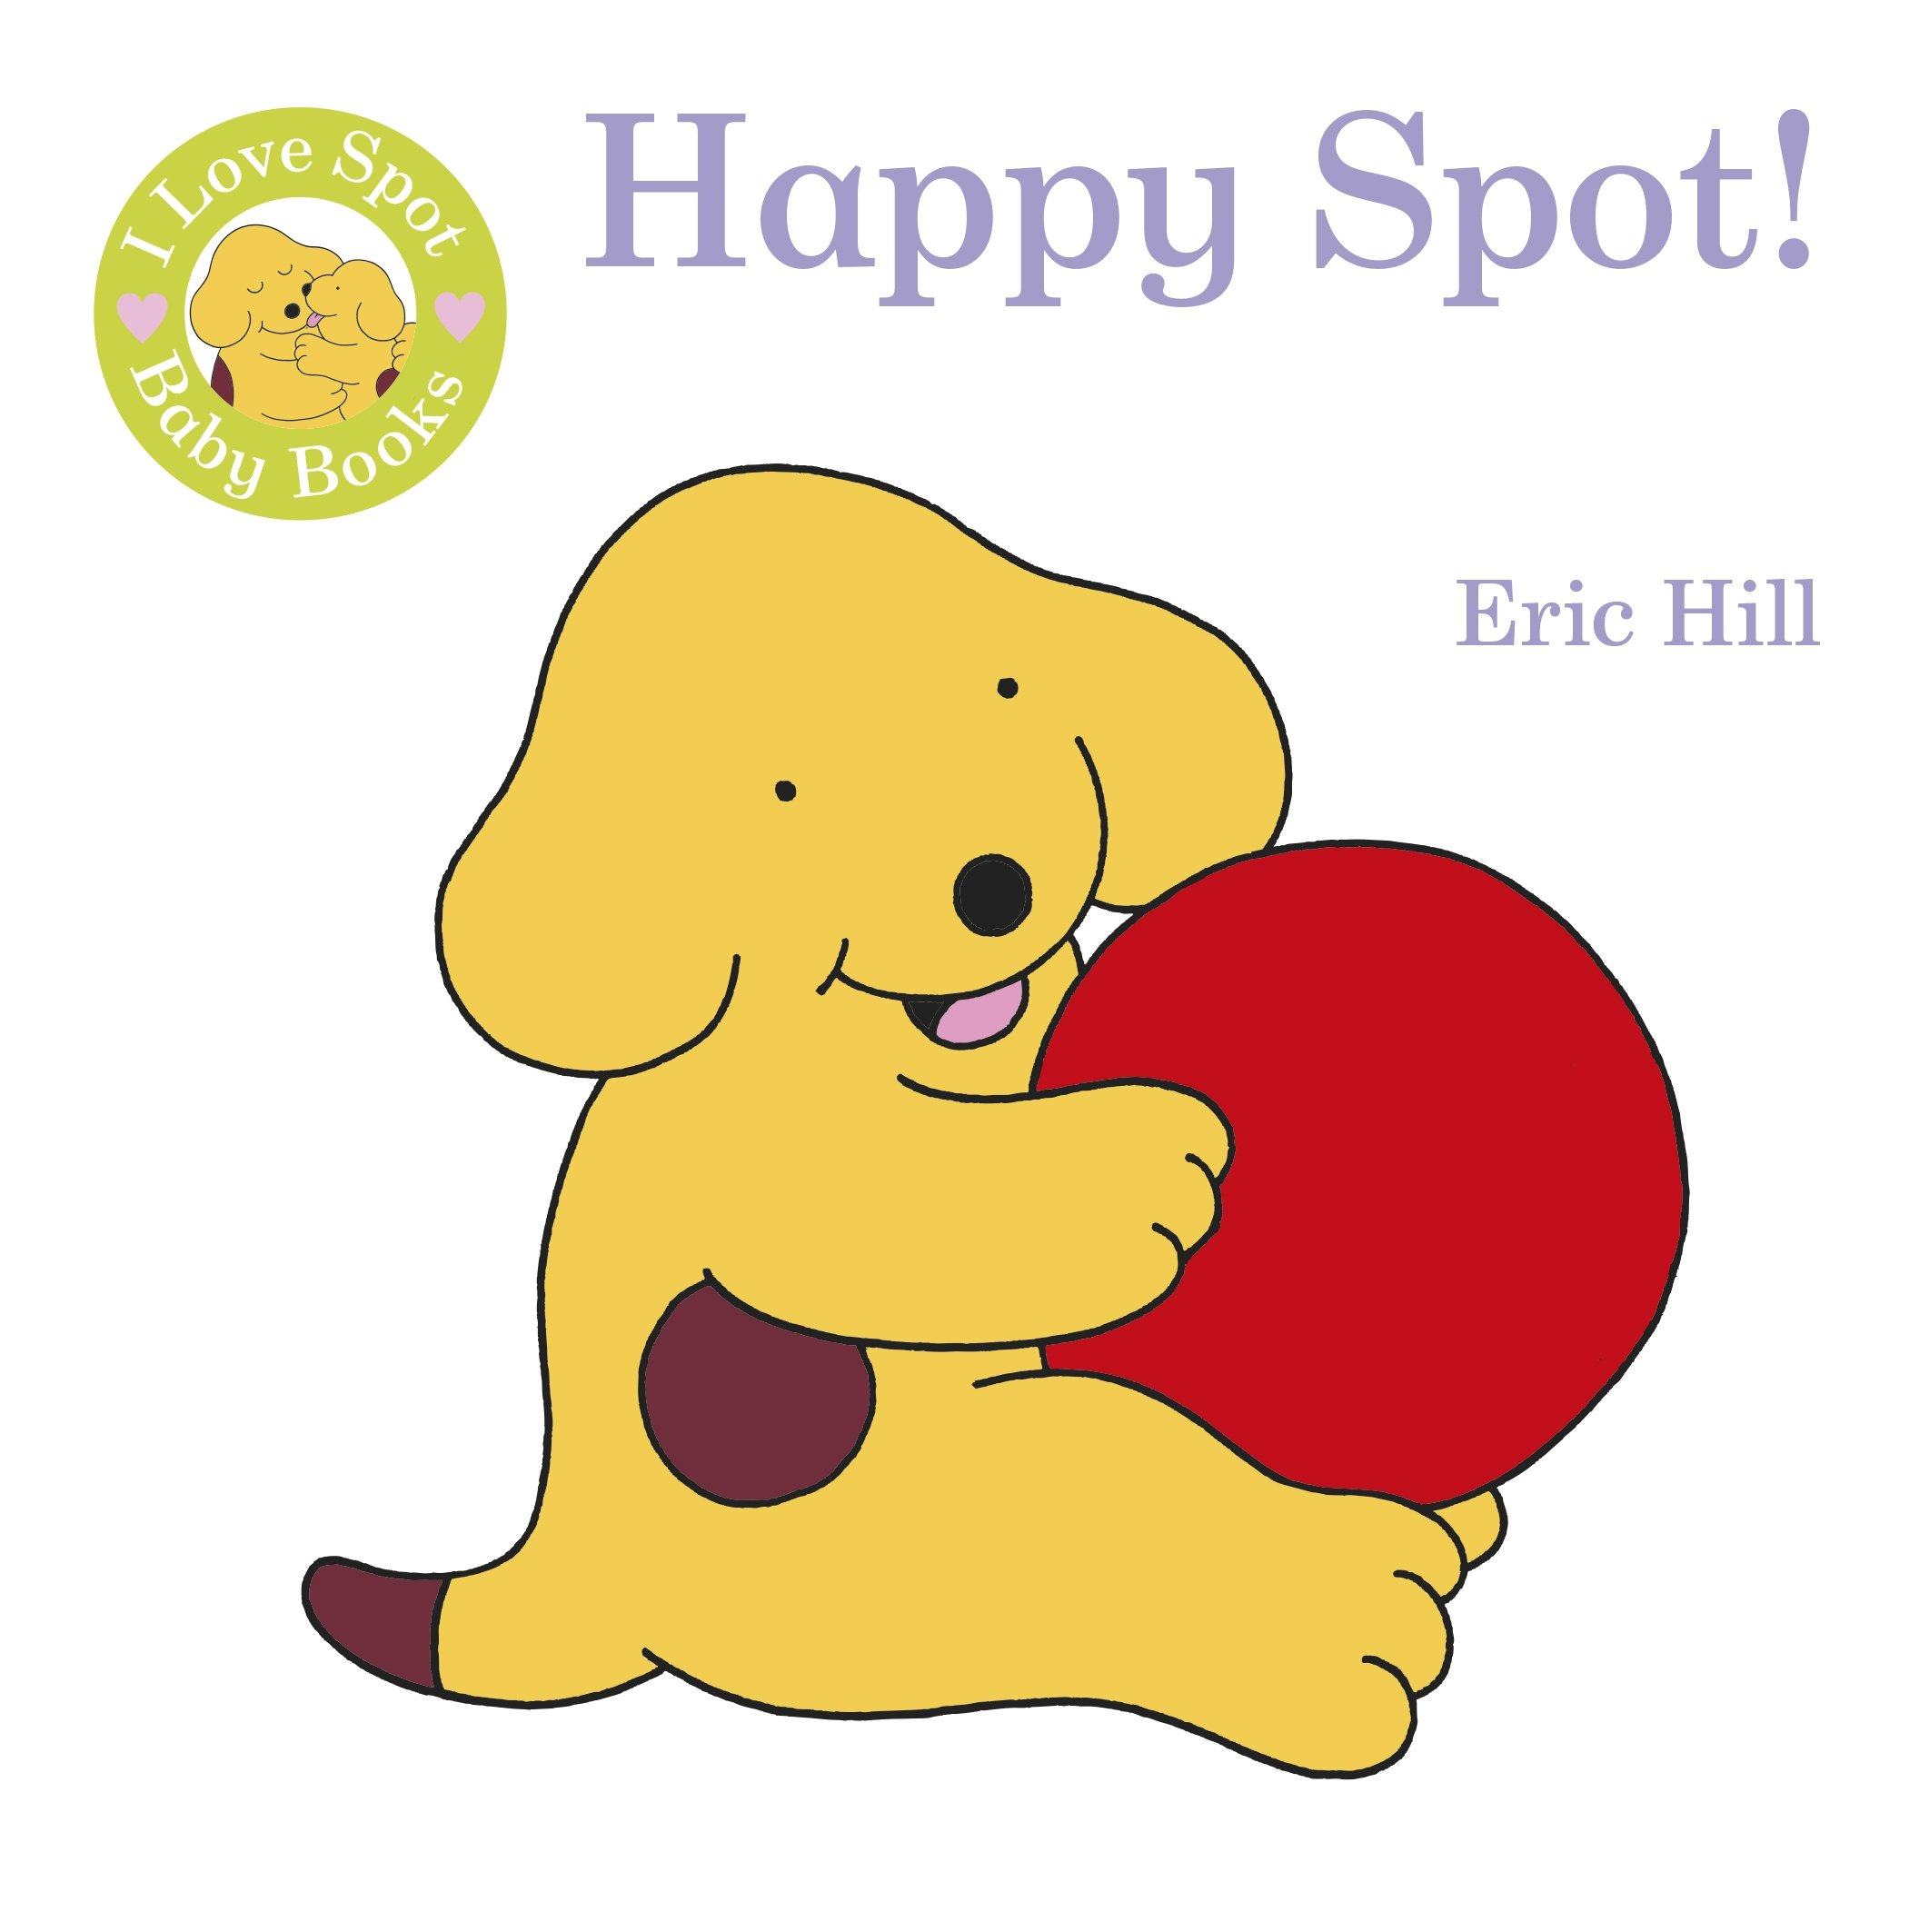 I Love Spot Baby Books Happy Spot Eric Hill 9780723271031 Amazon